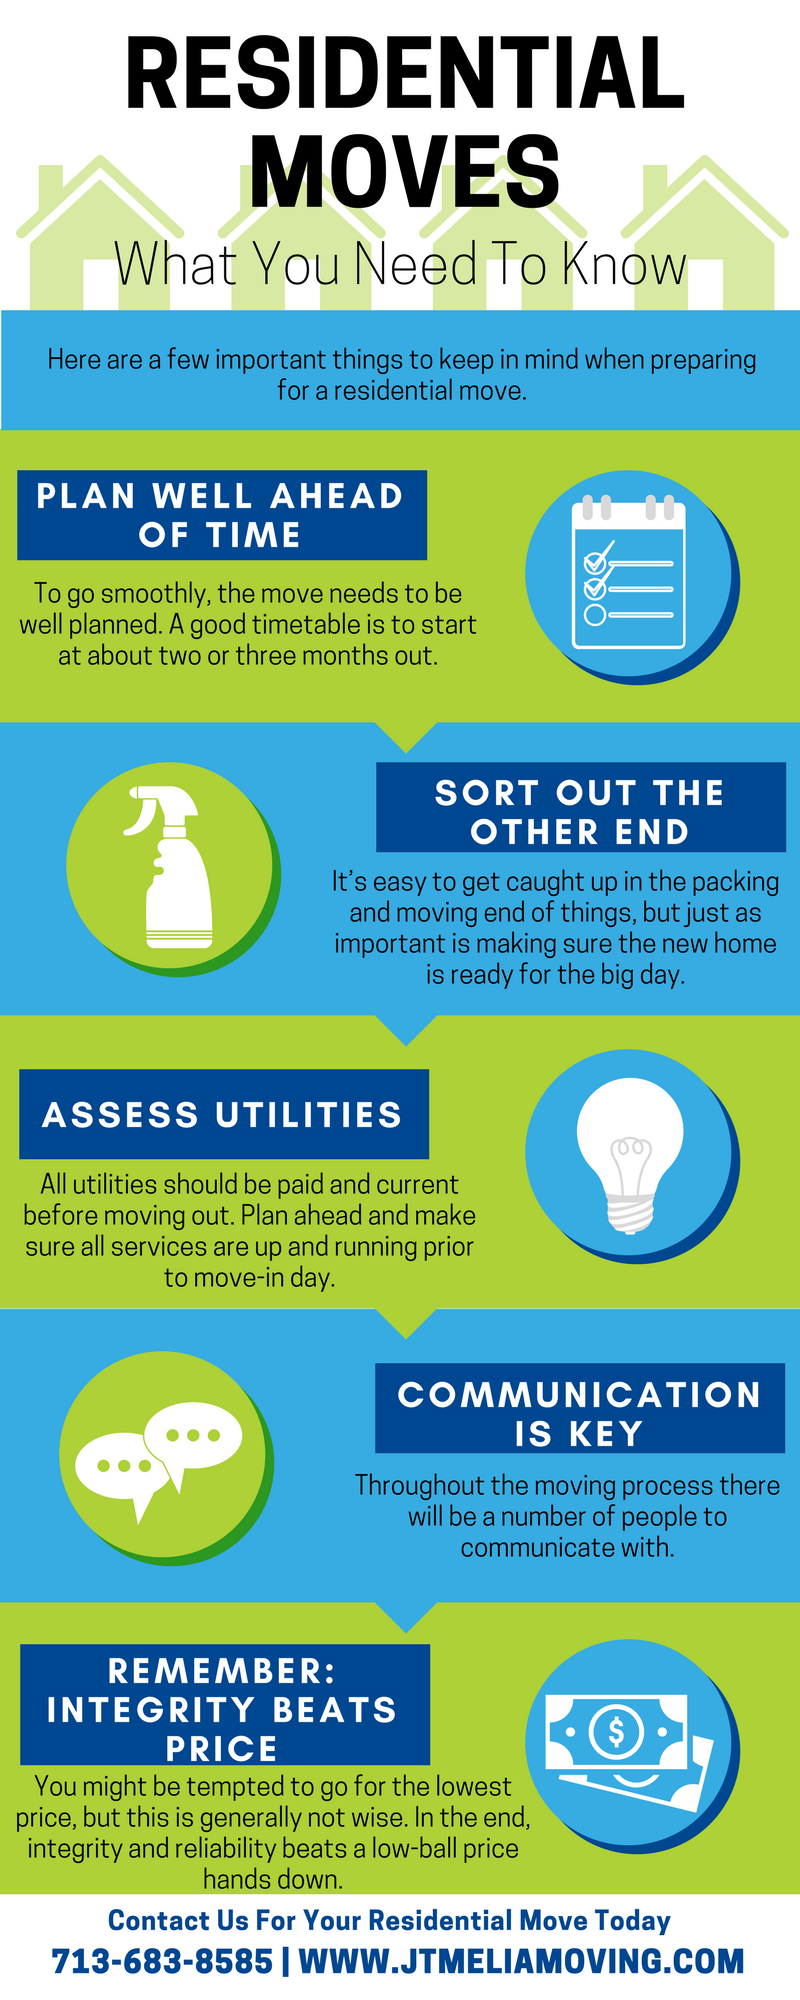 Residential-Moves-Topic-Page-JTM-Infogra